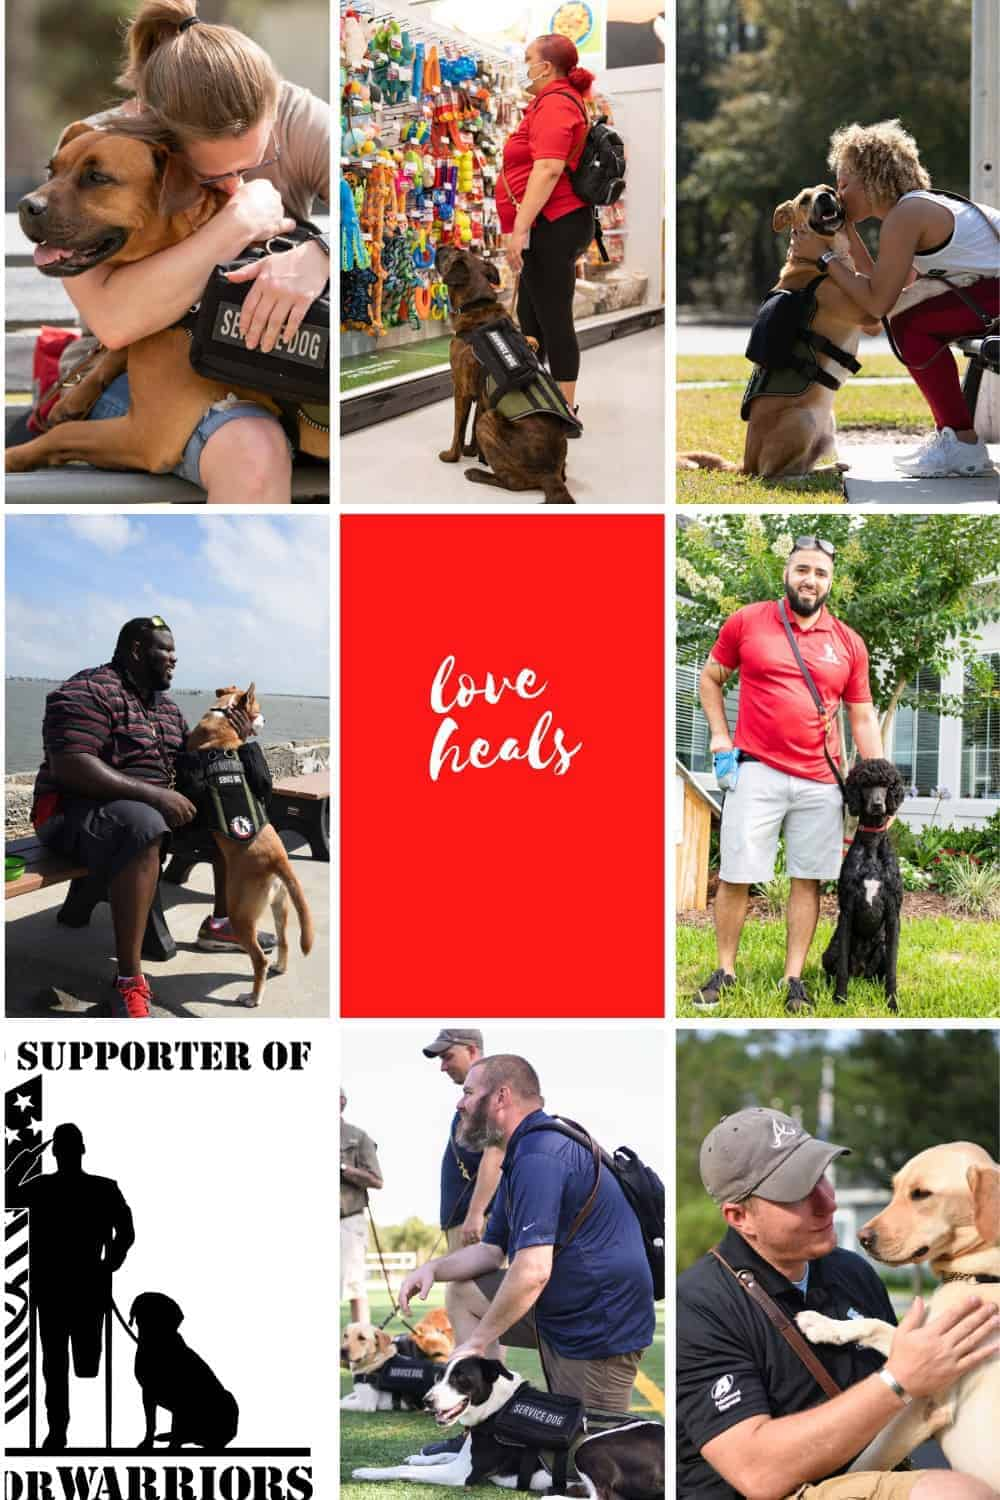 k9s for warriors giving campaign pinterest image